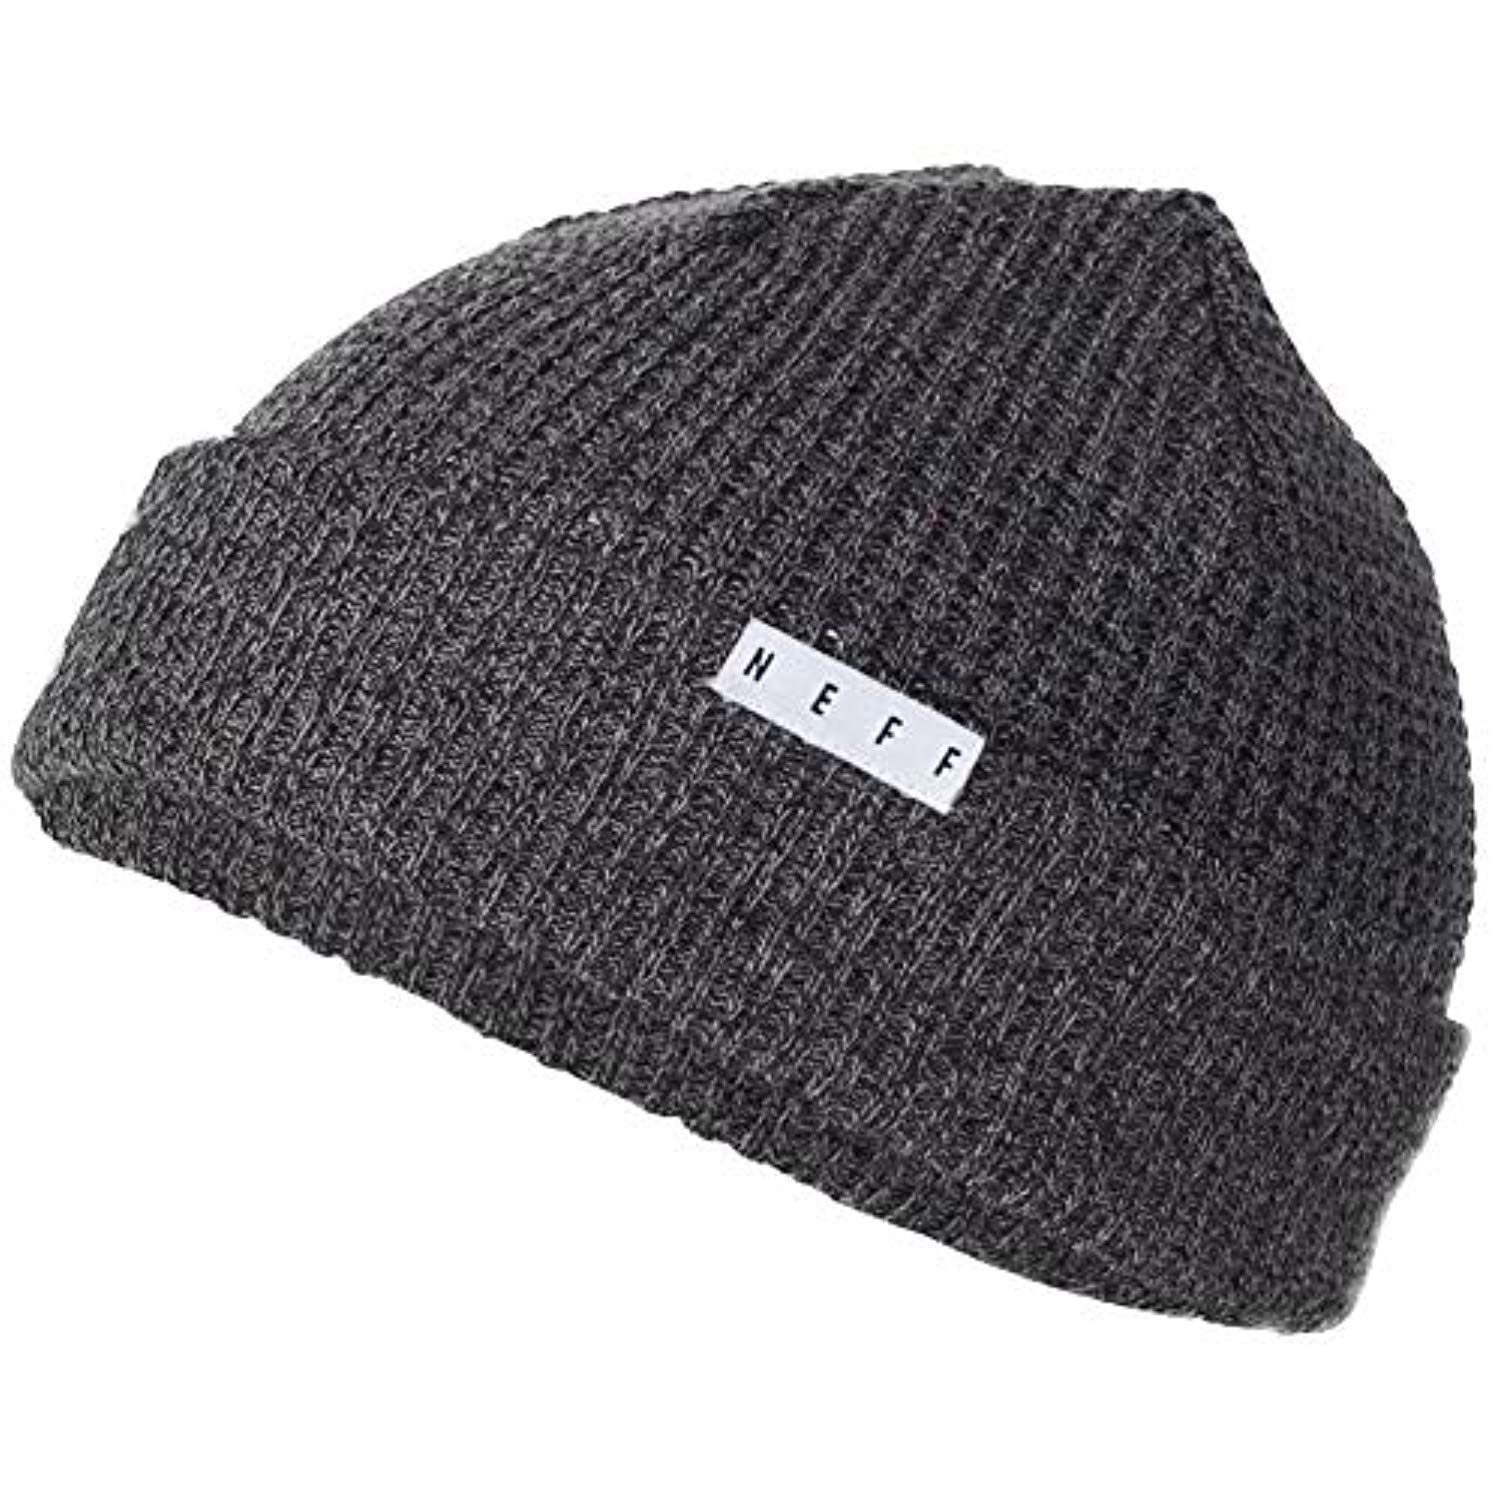 Amazon.com  NEFF Men s Rivet Fisherman Beanie 86b32f4226b